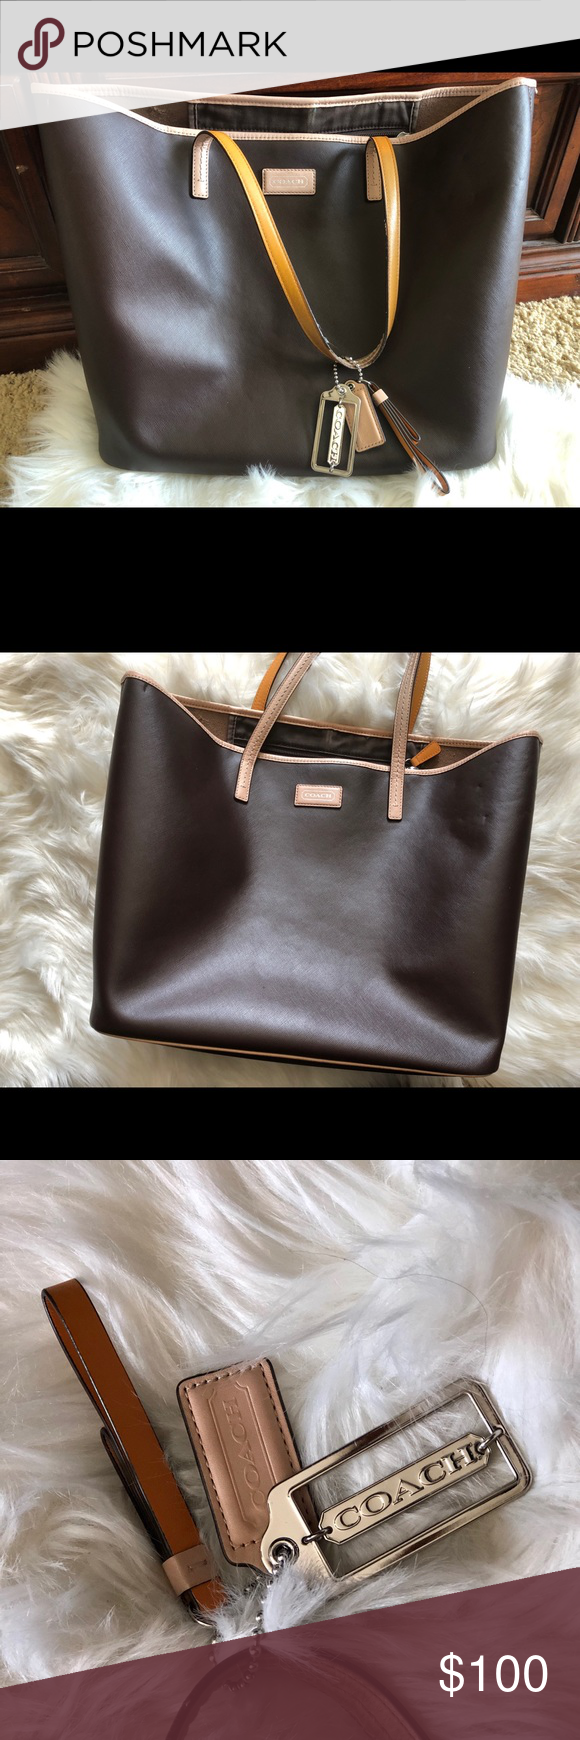 3dd0491c5fa08 Coach Park Metro Tote Bag Dark Brown Dark brown leather coach metro tote bag.  Brown